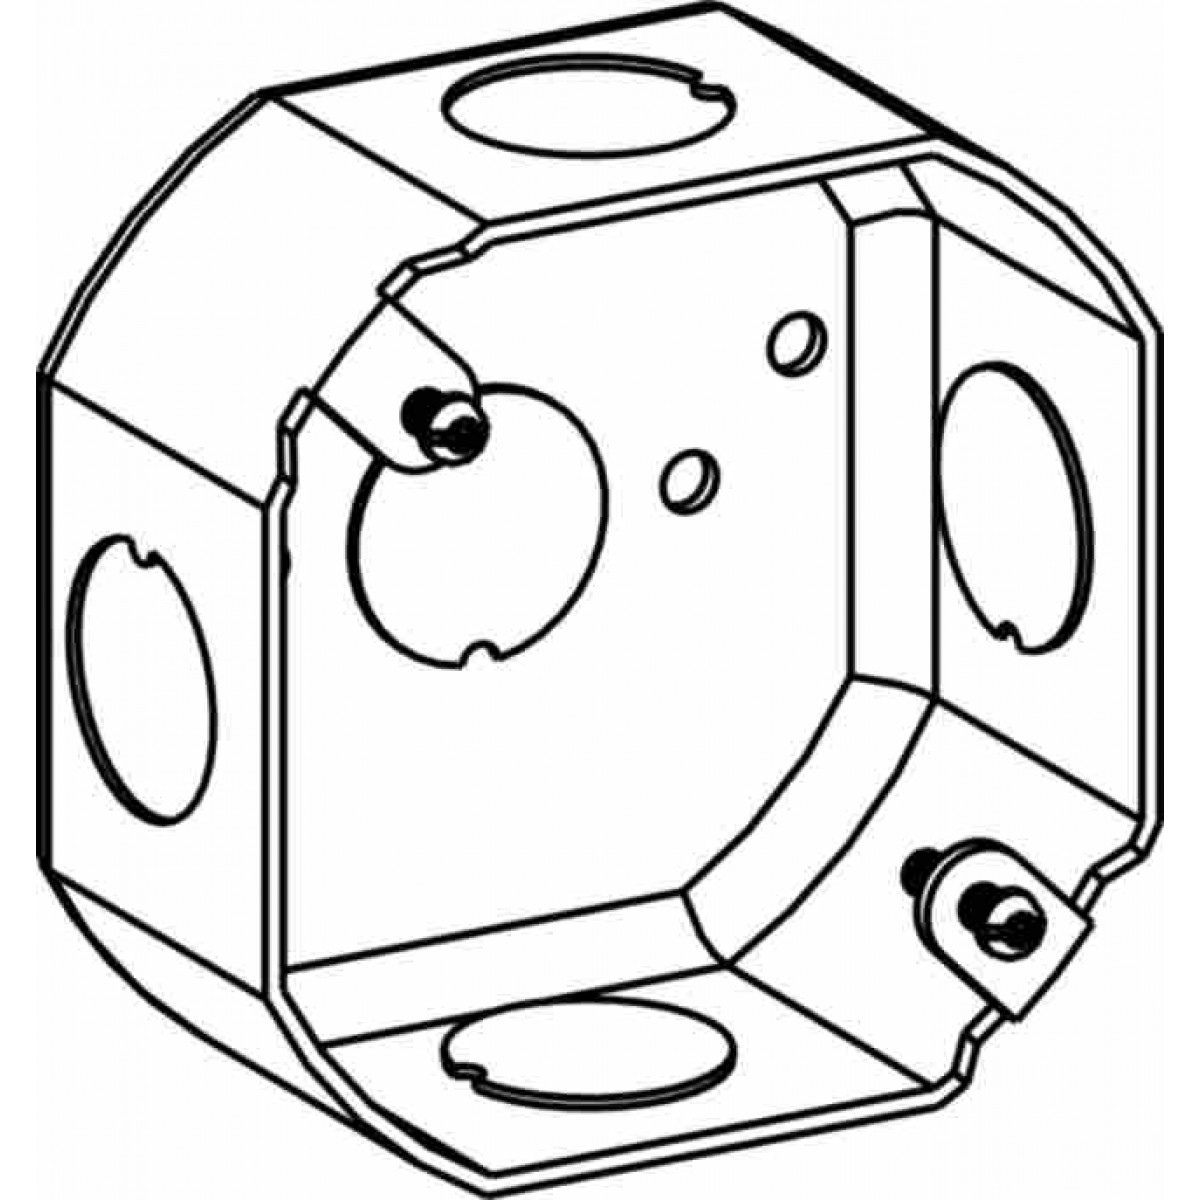 Boxes clipart drawing.  rb o electrical